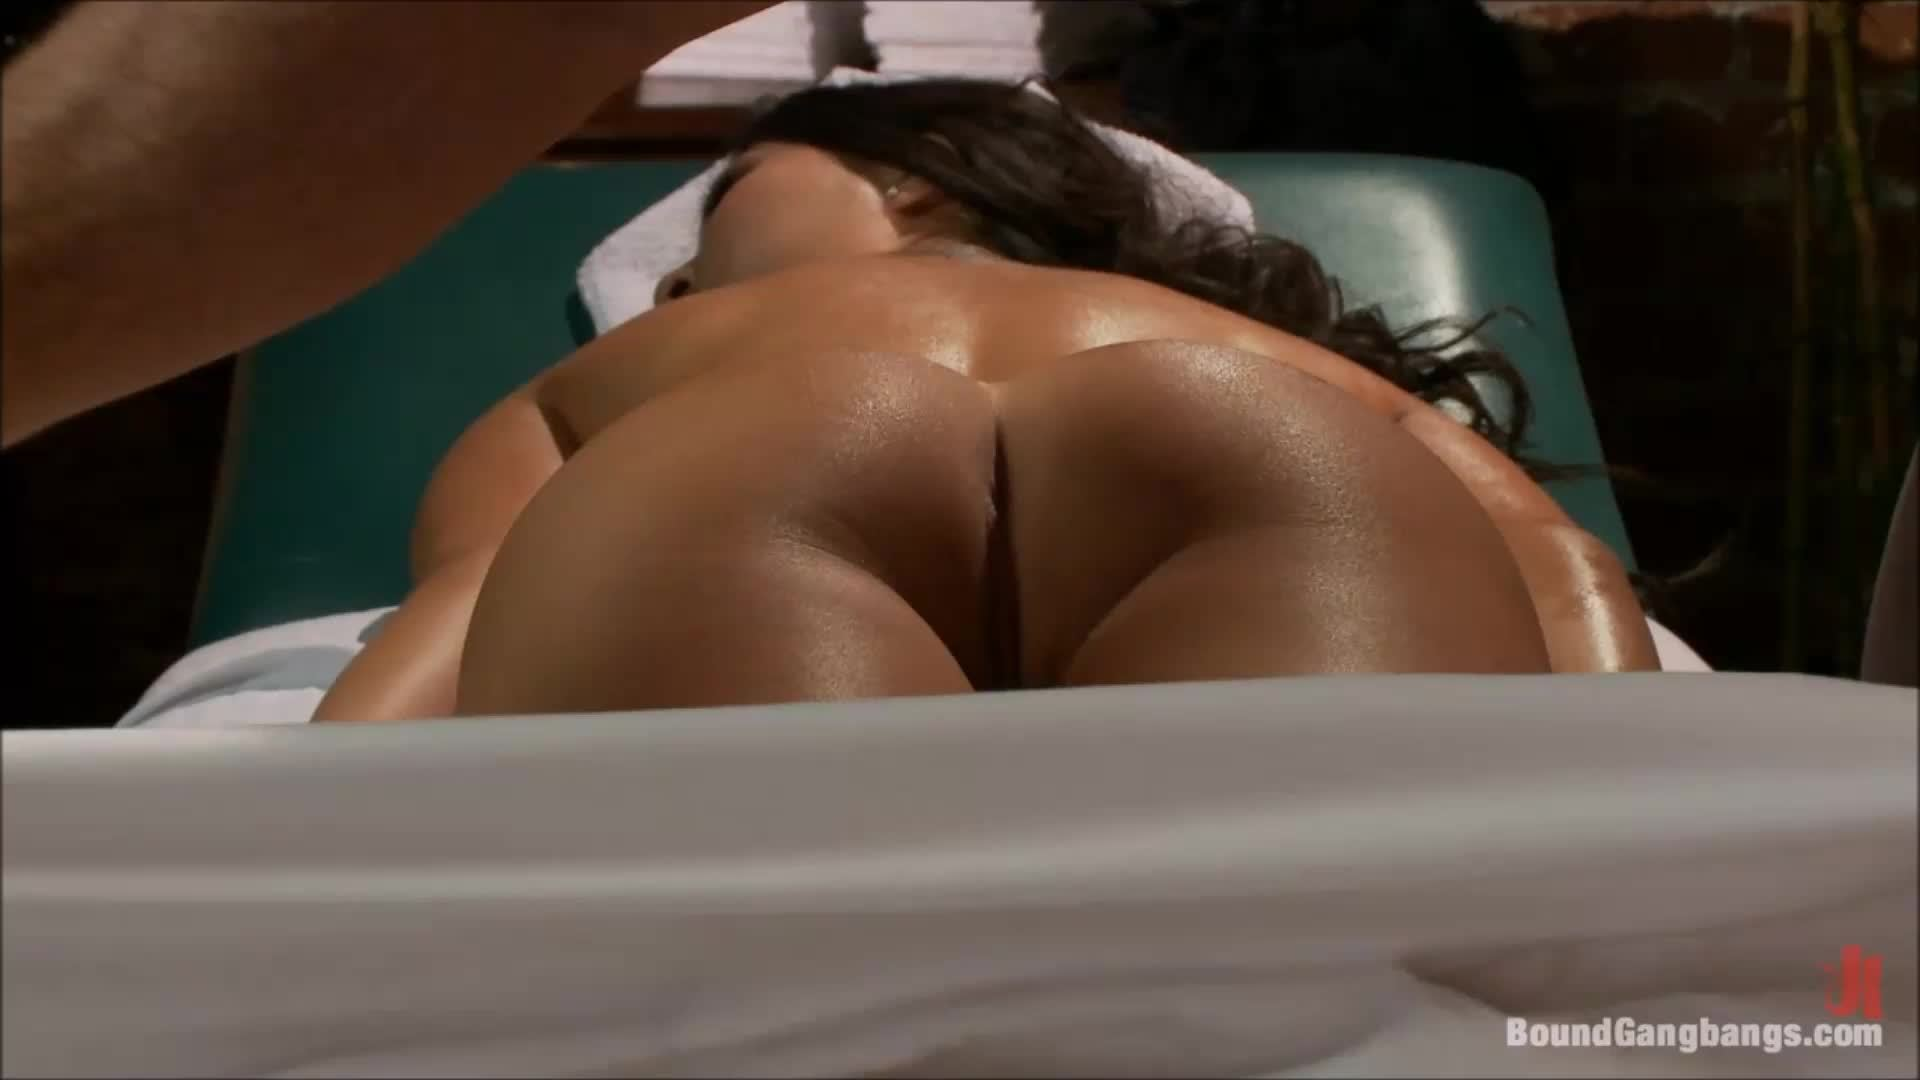 hot filipina babe with amazing tits gets her pussy stuffed